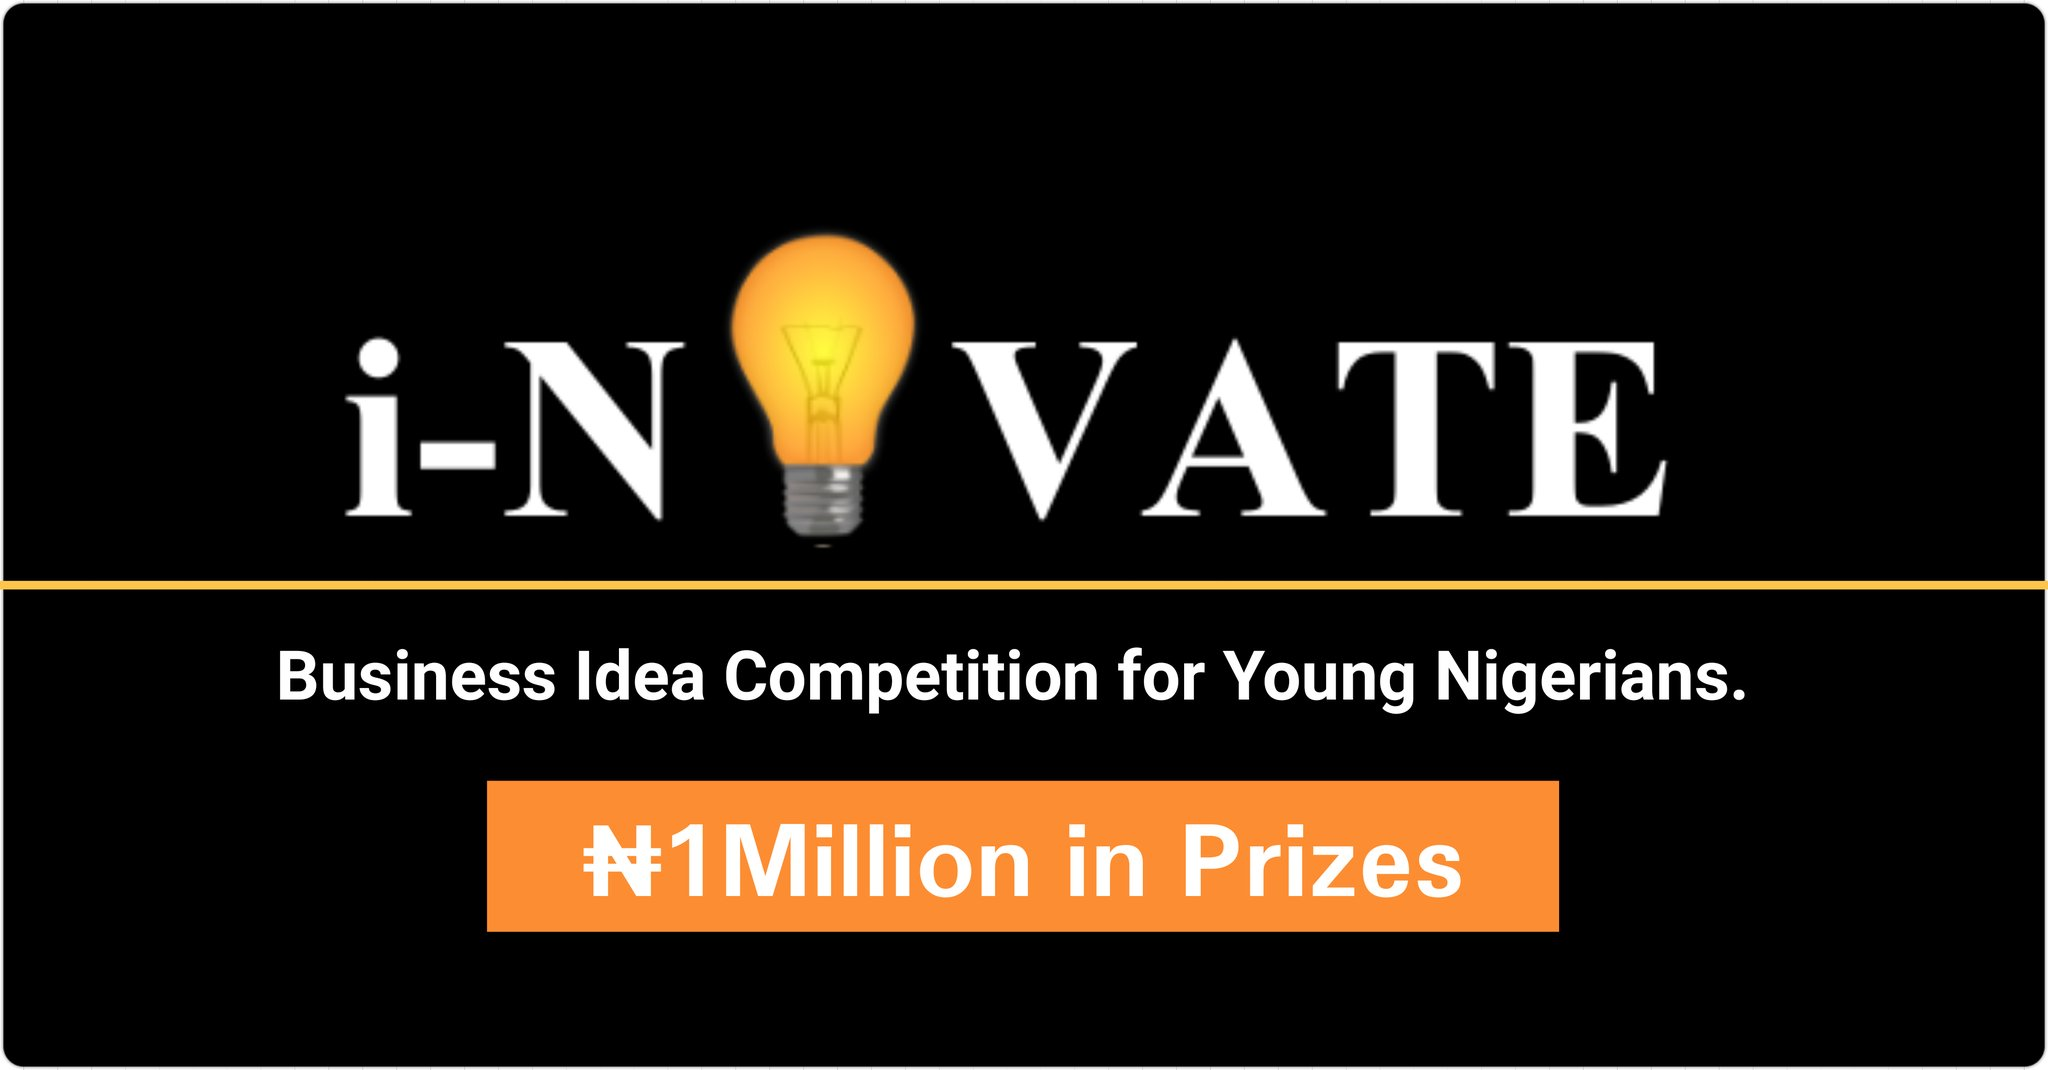 FG Set to Launch Portal for i-Novate 2021 - Each Applicant to Recieve N2 Million